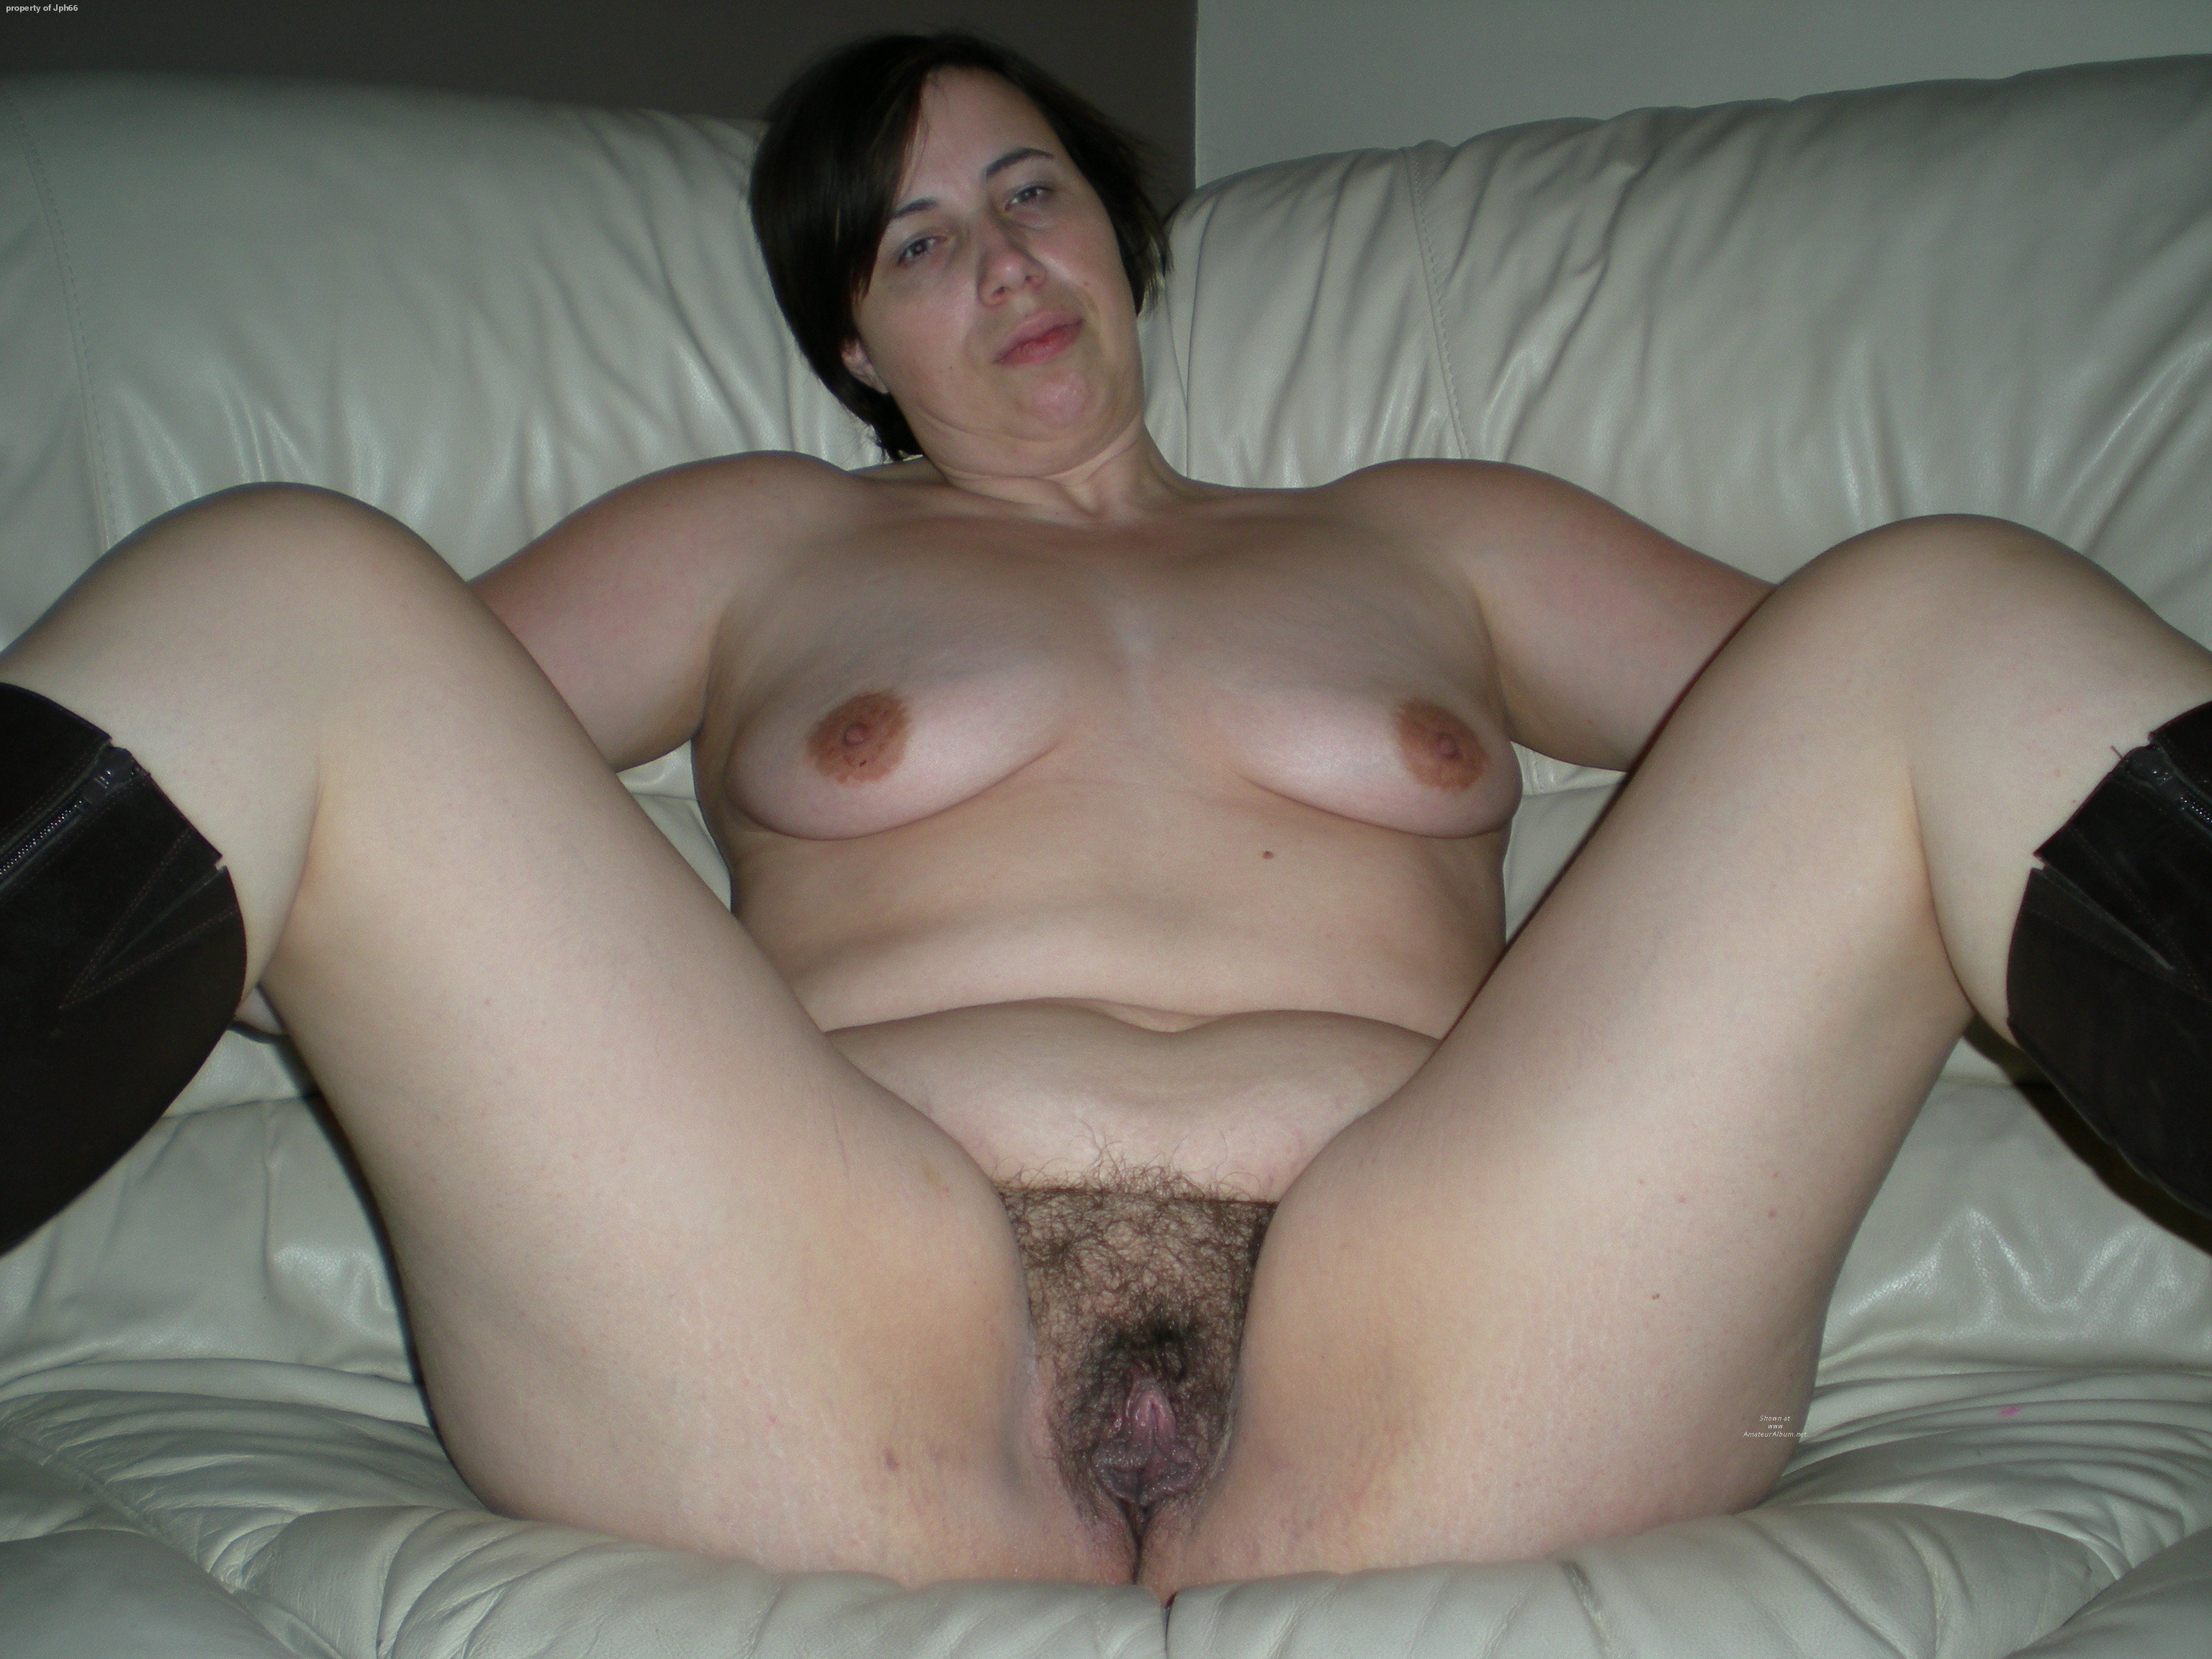 Sorry, that amateur naked hairy wife pics pity